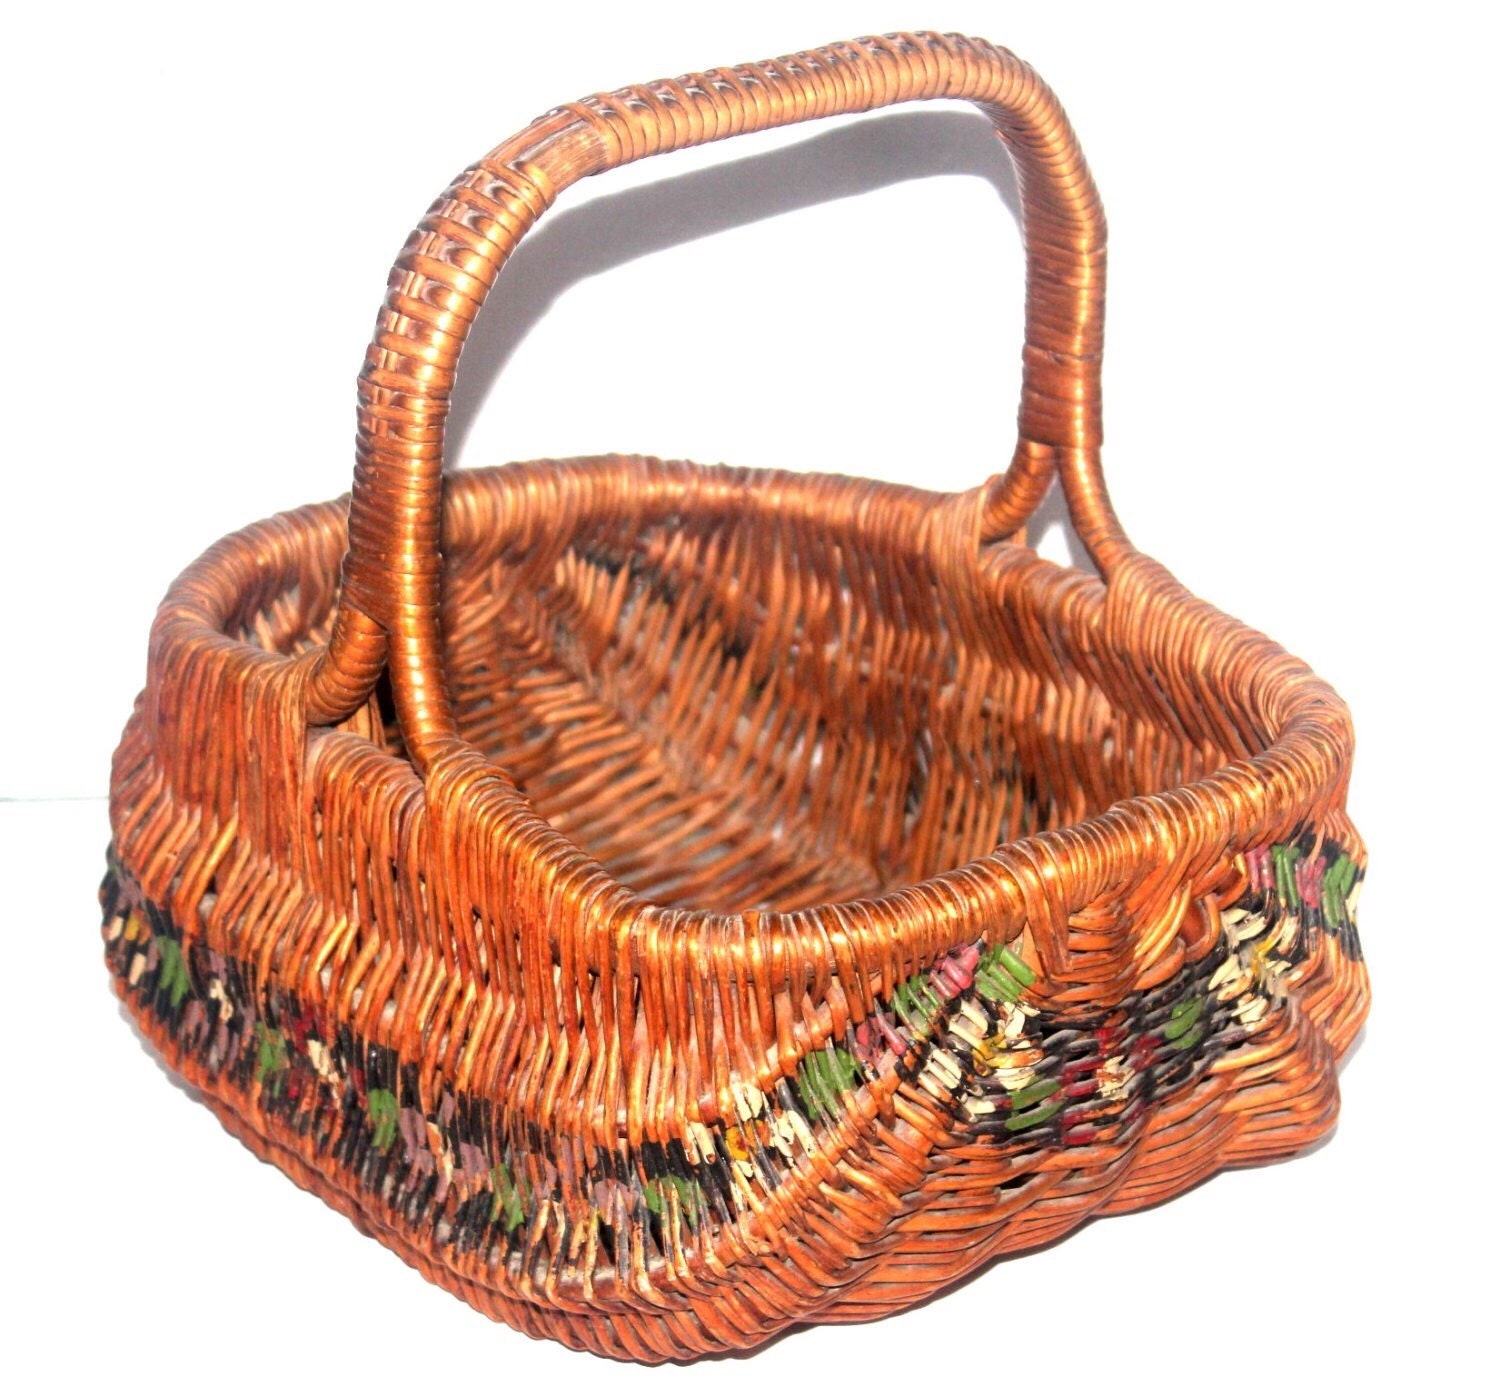 Old Handmade Baskets : Antique dutch woven painted basket amish by antiquealchemy